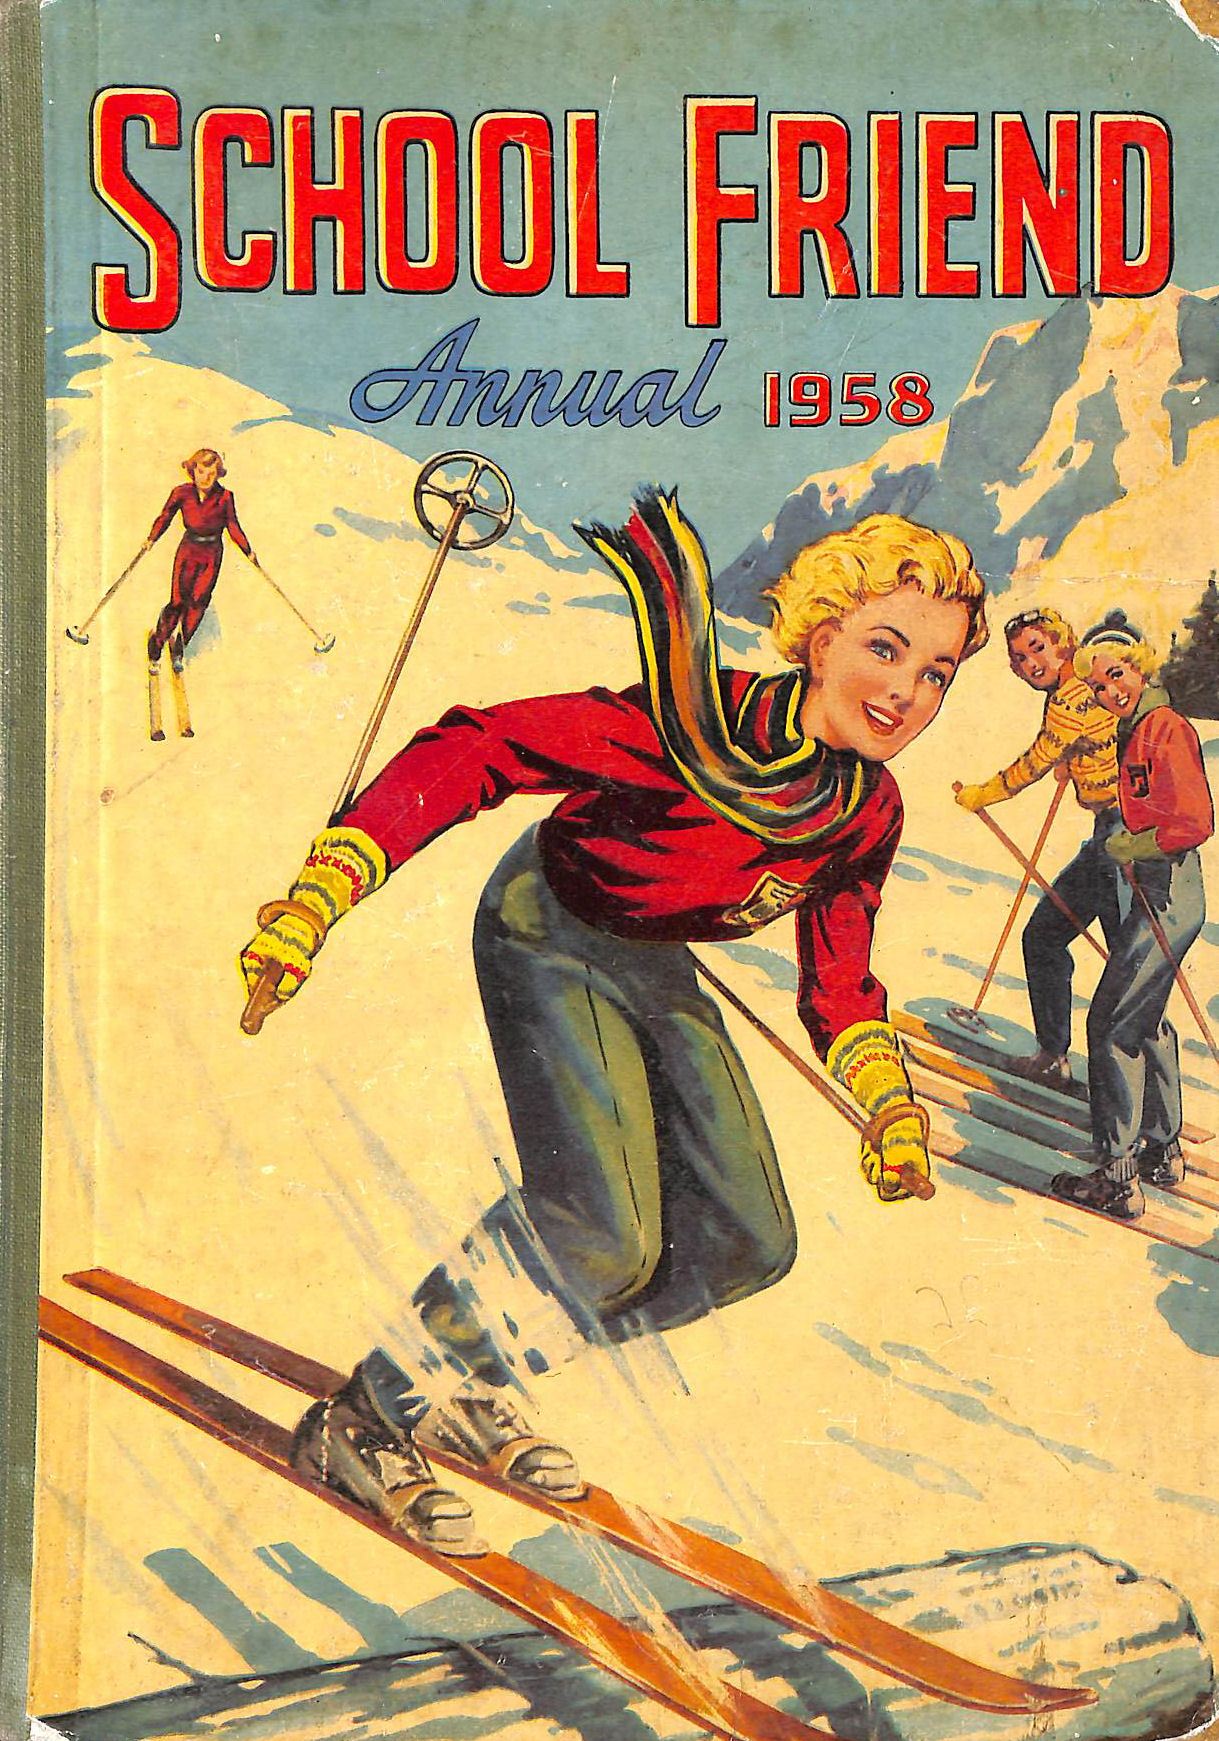 Image for School Friend Annual 1958